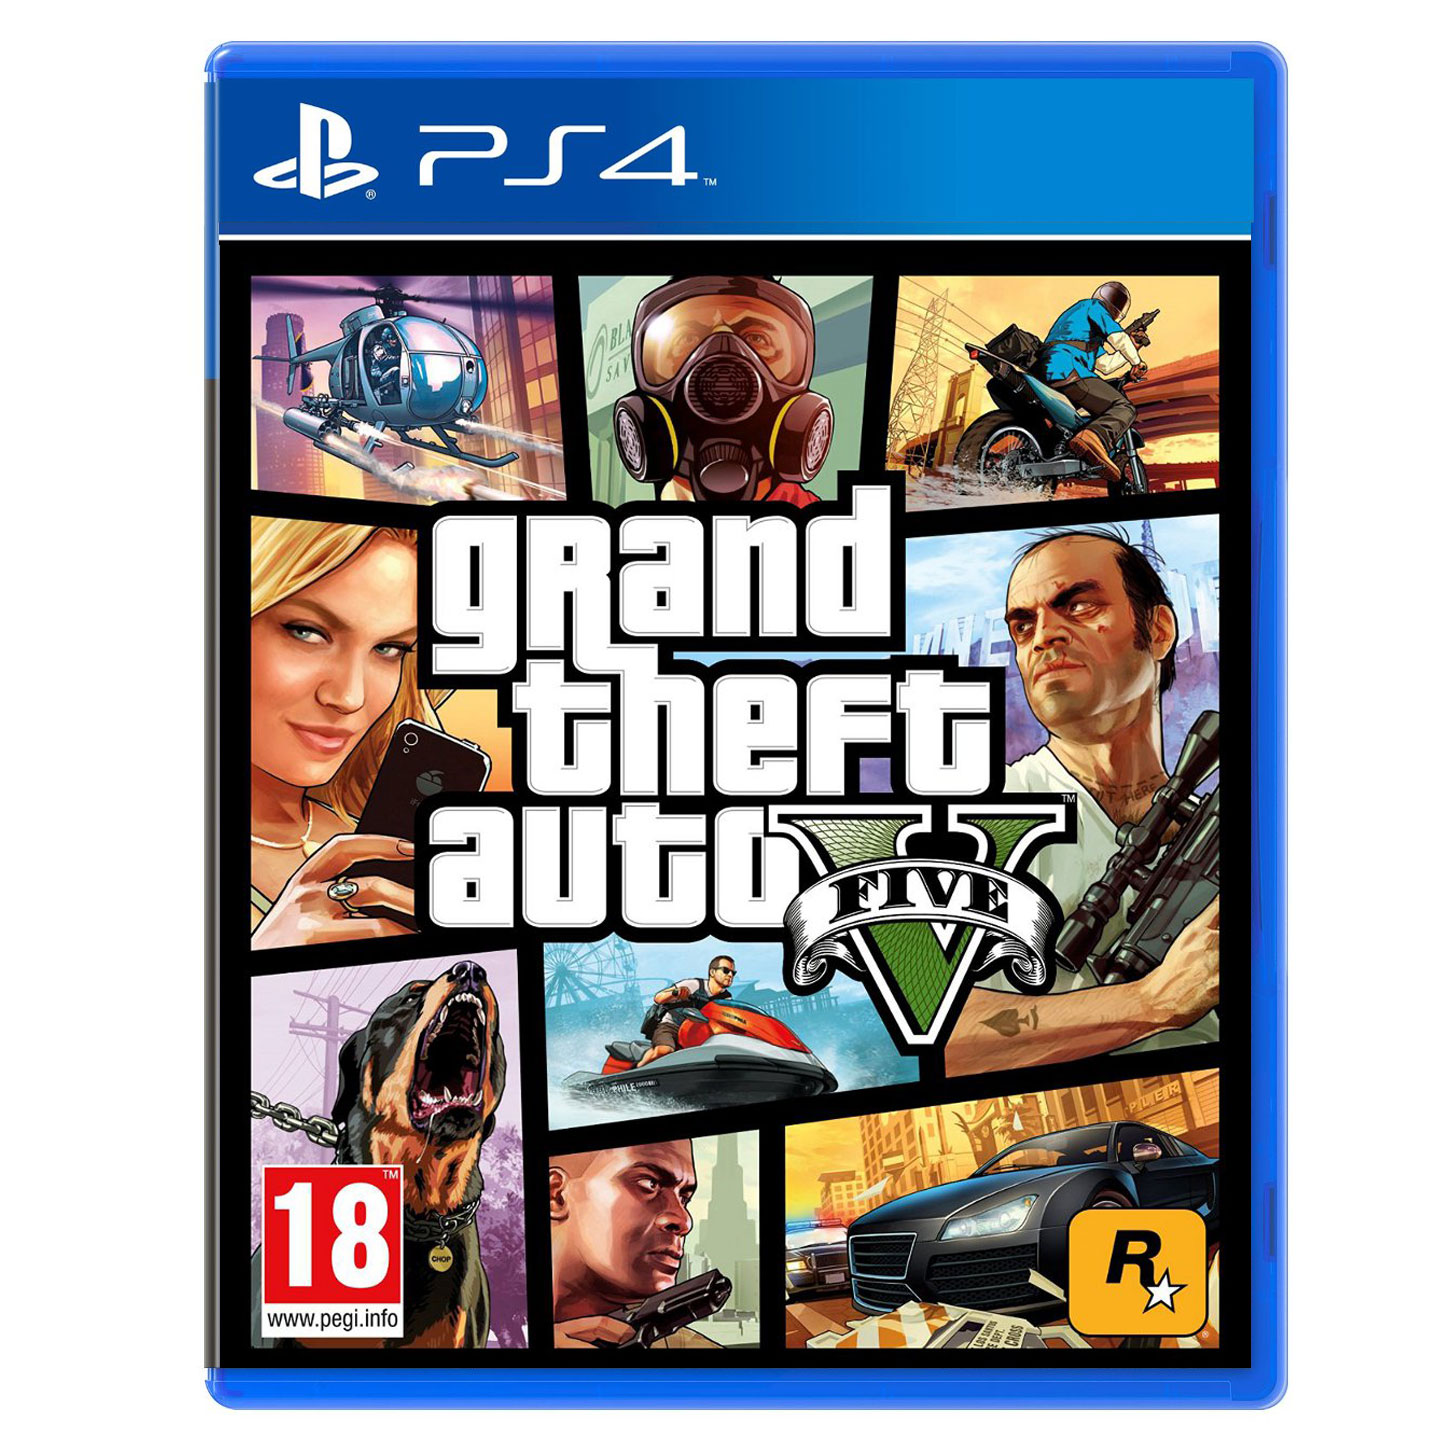 Jeux Ps4 Grand Theft Auto V - Gta 5 (ps4) - Jeux Ps4 Take-two Sur